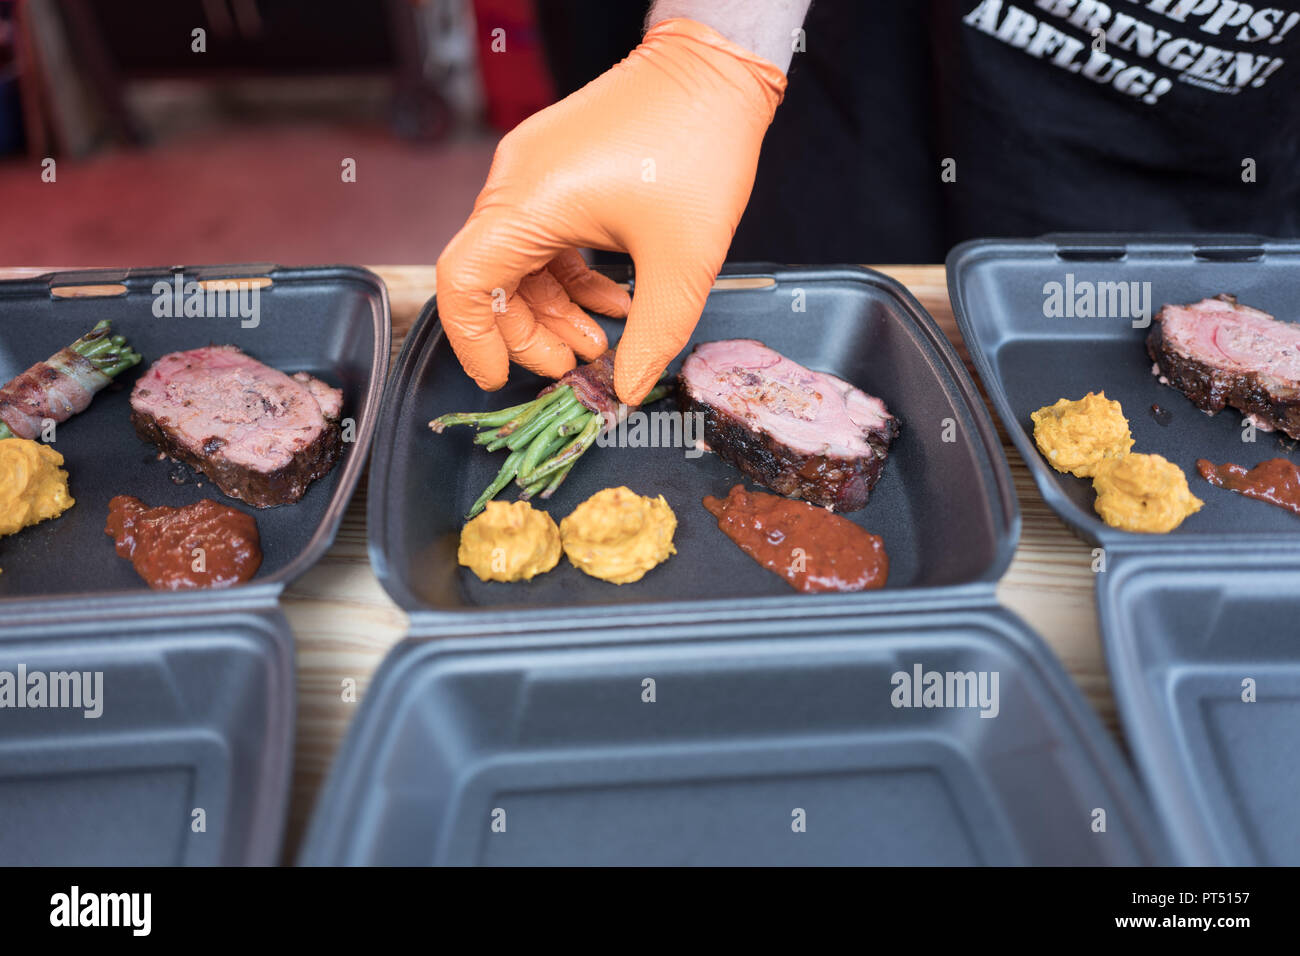 Templin, Brandenburg. 06th Oct, 2018. 06 October 2018, Germany, Templin: The team 'Born for BBQ' prepares a dish with Templiner wild boar at the first 'Brandenburgische Grillmeisterschaft' in the 'El Dorado Templin'. A total of eight teams grill for the grill crown. Credit: Jörg Carstensen/dpa/Alamy Live News - Stock Image